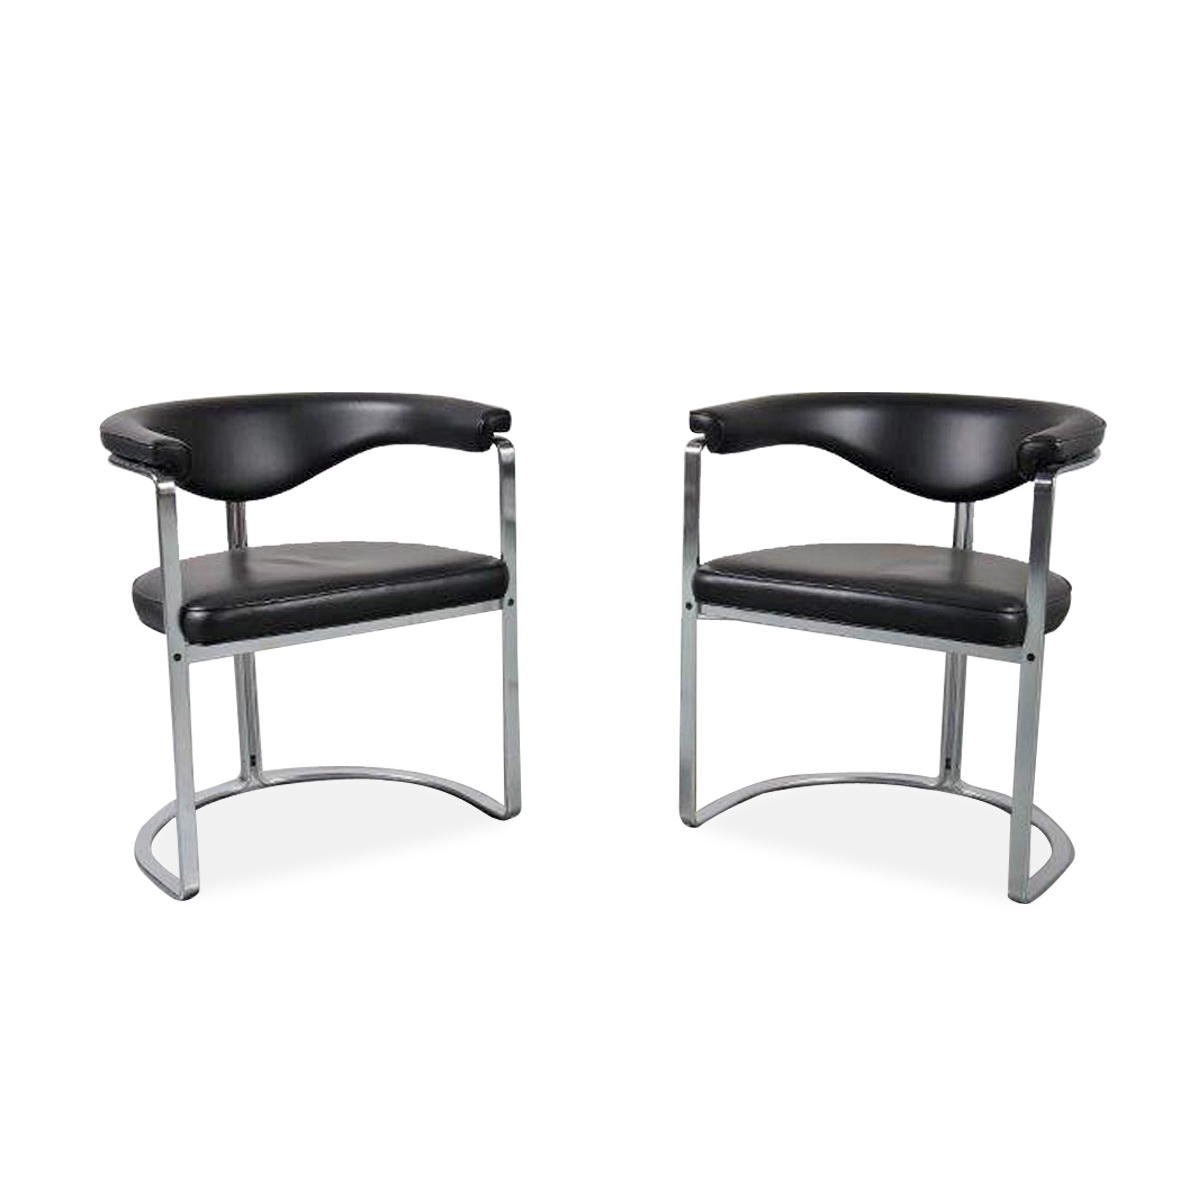 m23784 Pair of Dining Chairs in Flat Chromed Steel, for Kill Int. 1968 Horst Brüning Kill International / Germany